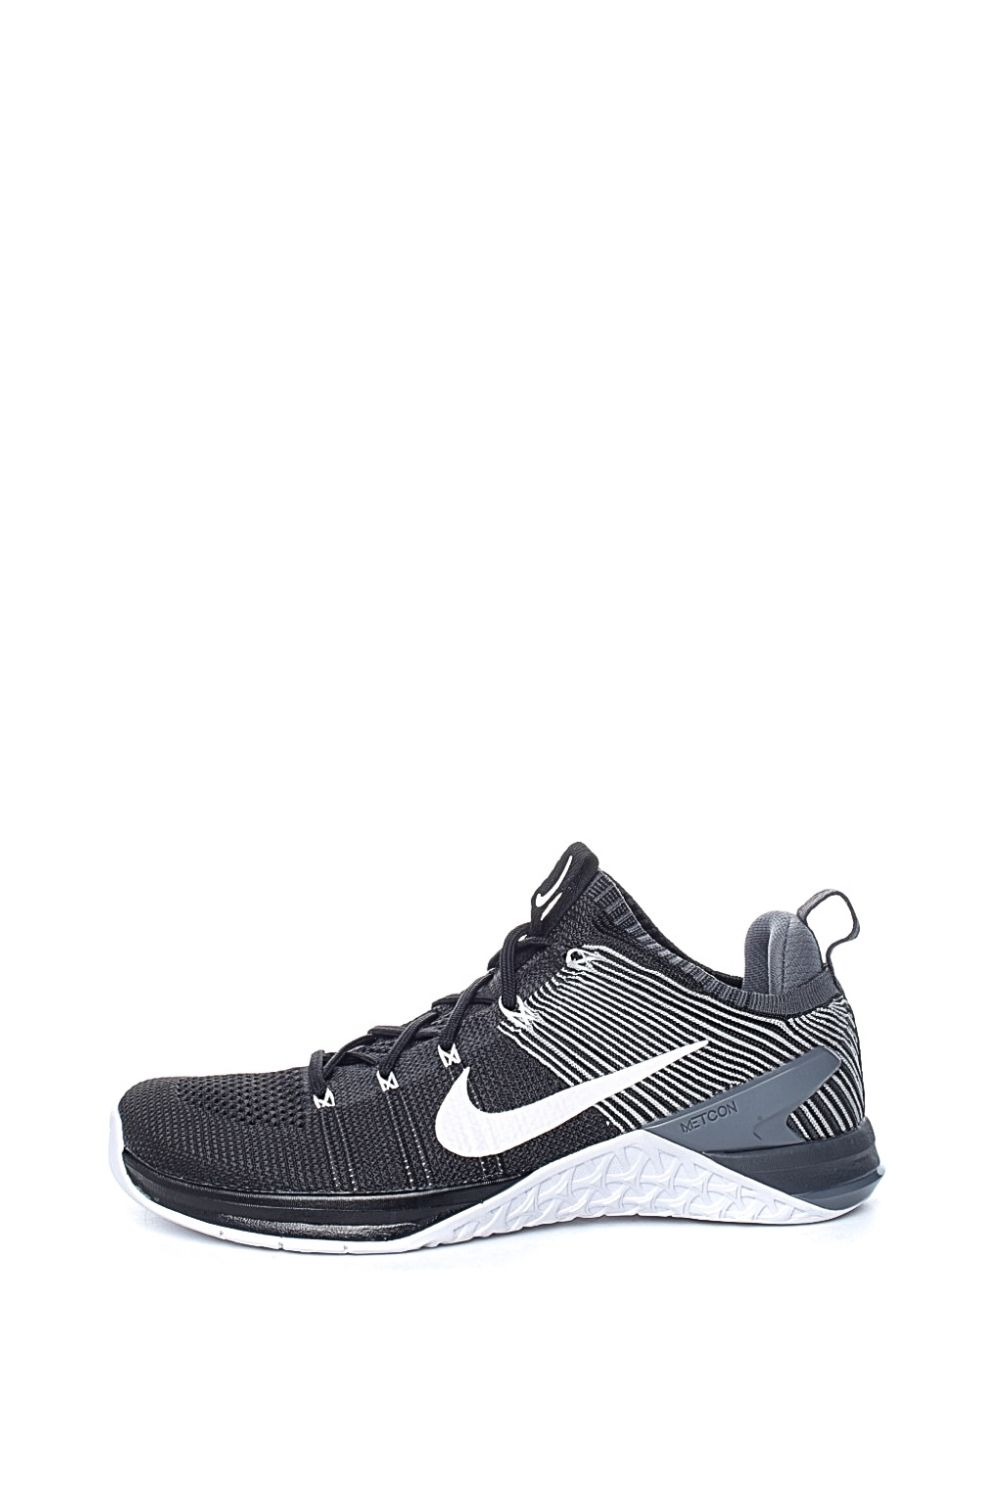 NIKE – Ανδρικά παπούτσια training NIKE METCON DSX FLYKNIT 2 μαύρα